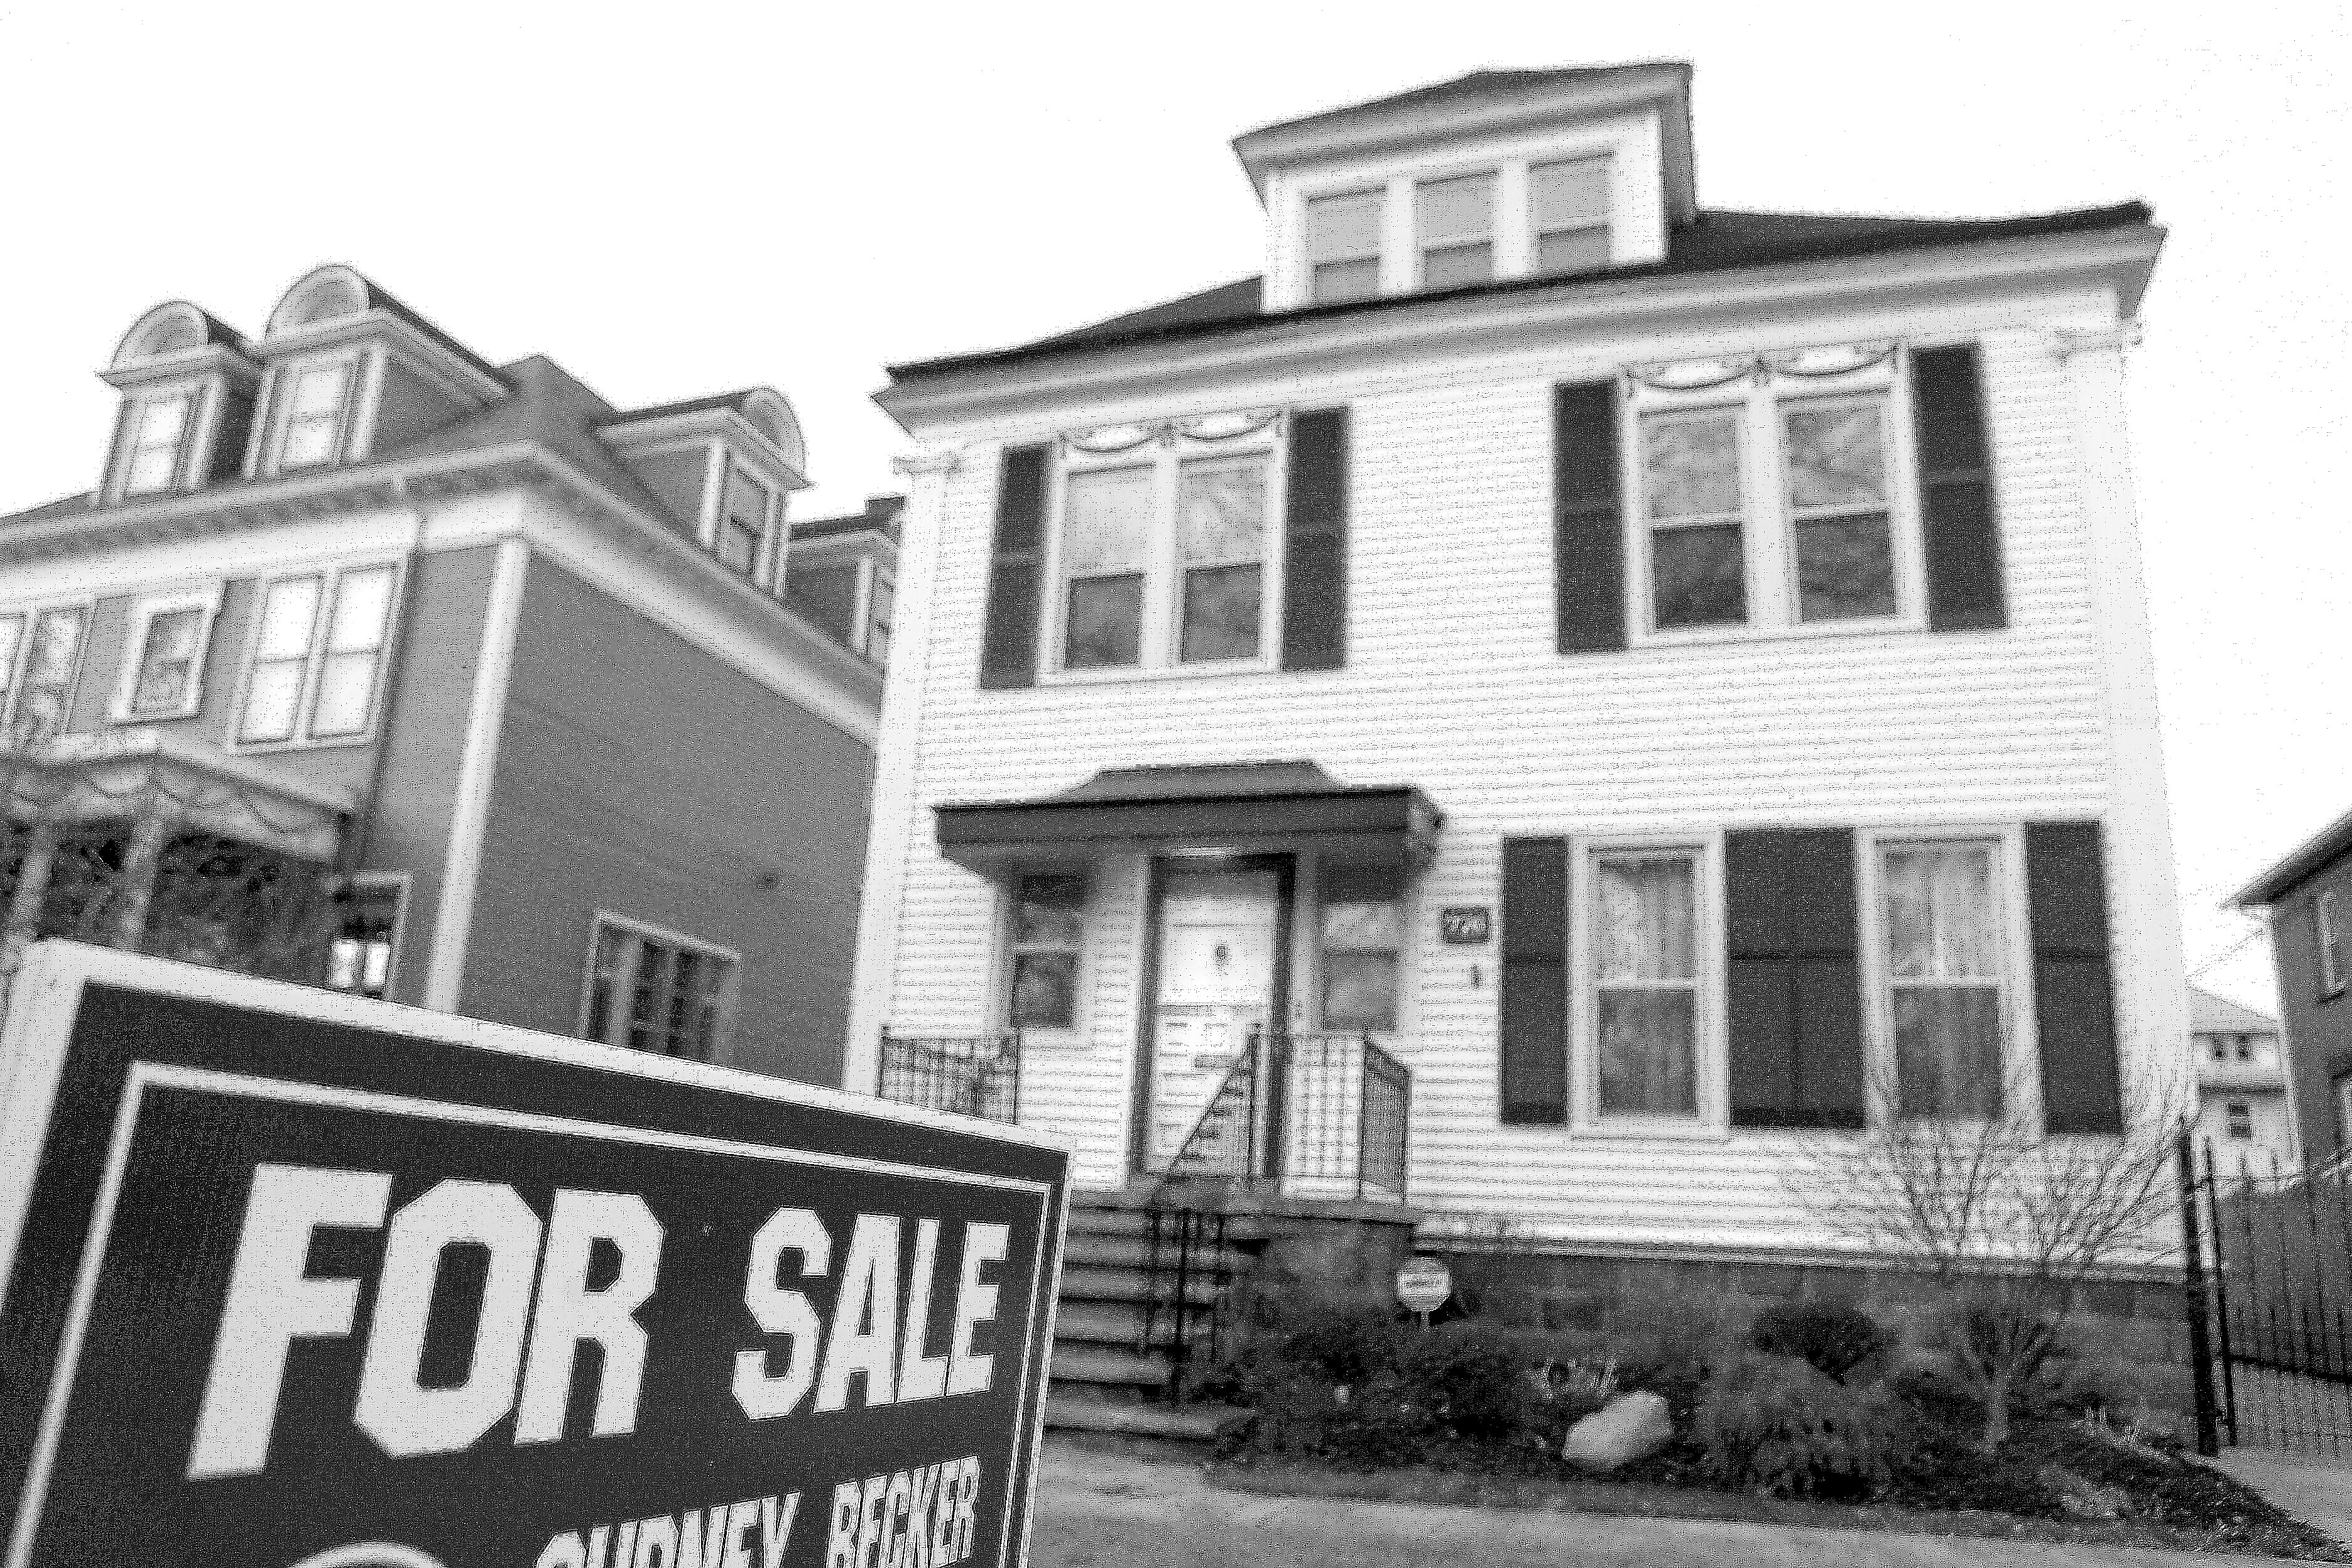 Although sales are sizzling, the number of homes on the market fell to a four-year low in March. Multiple-offer situations are common, and many houses are selling above asking price.